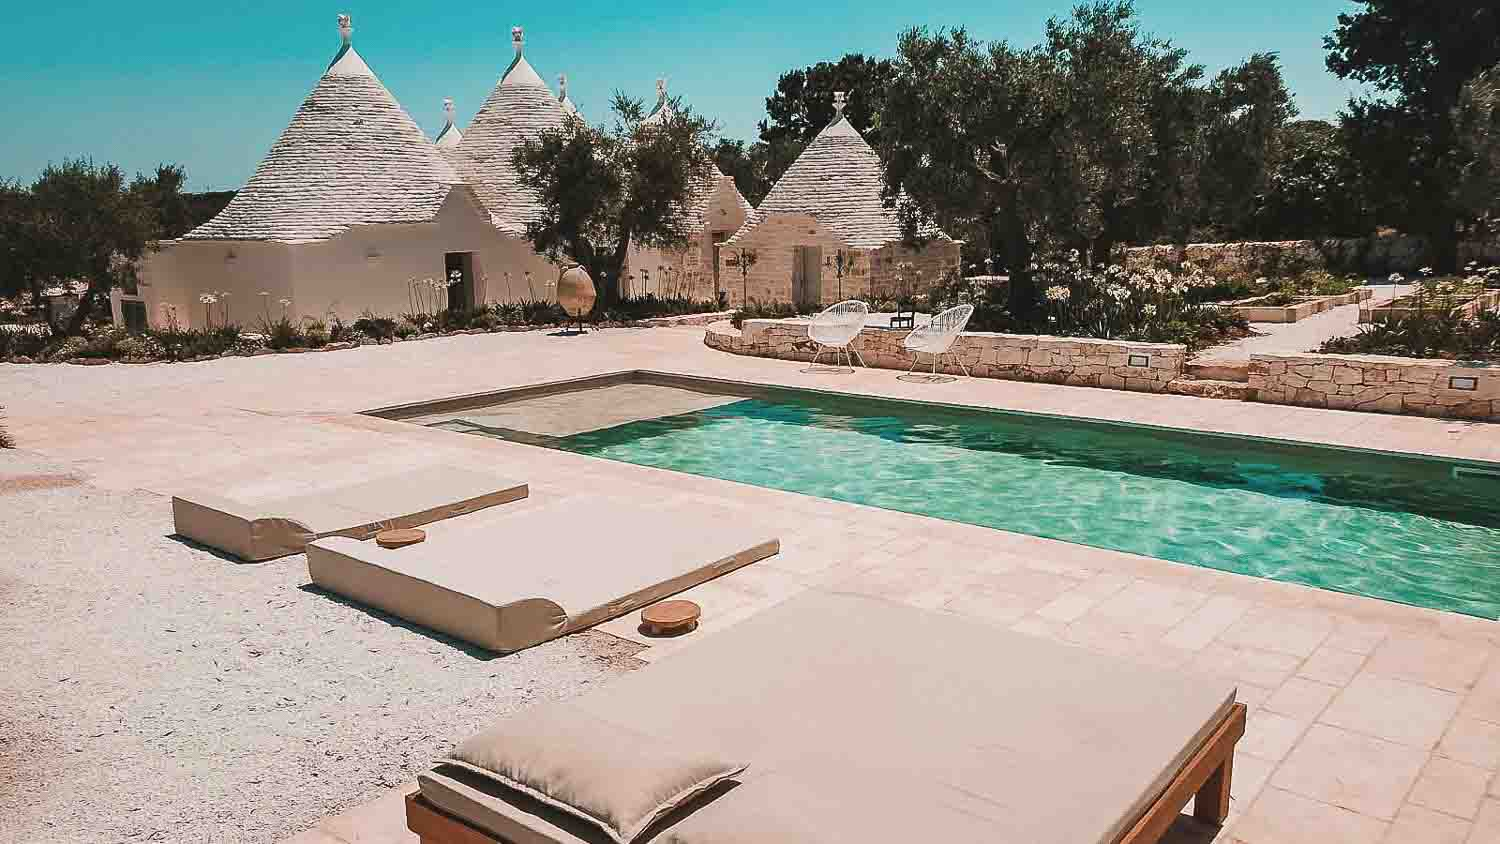 Rental in Alberobello with pool - Apulia, Italy